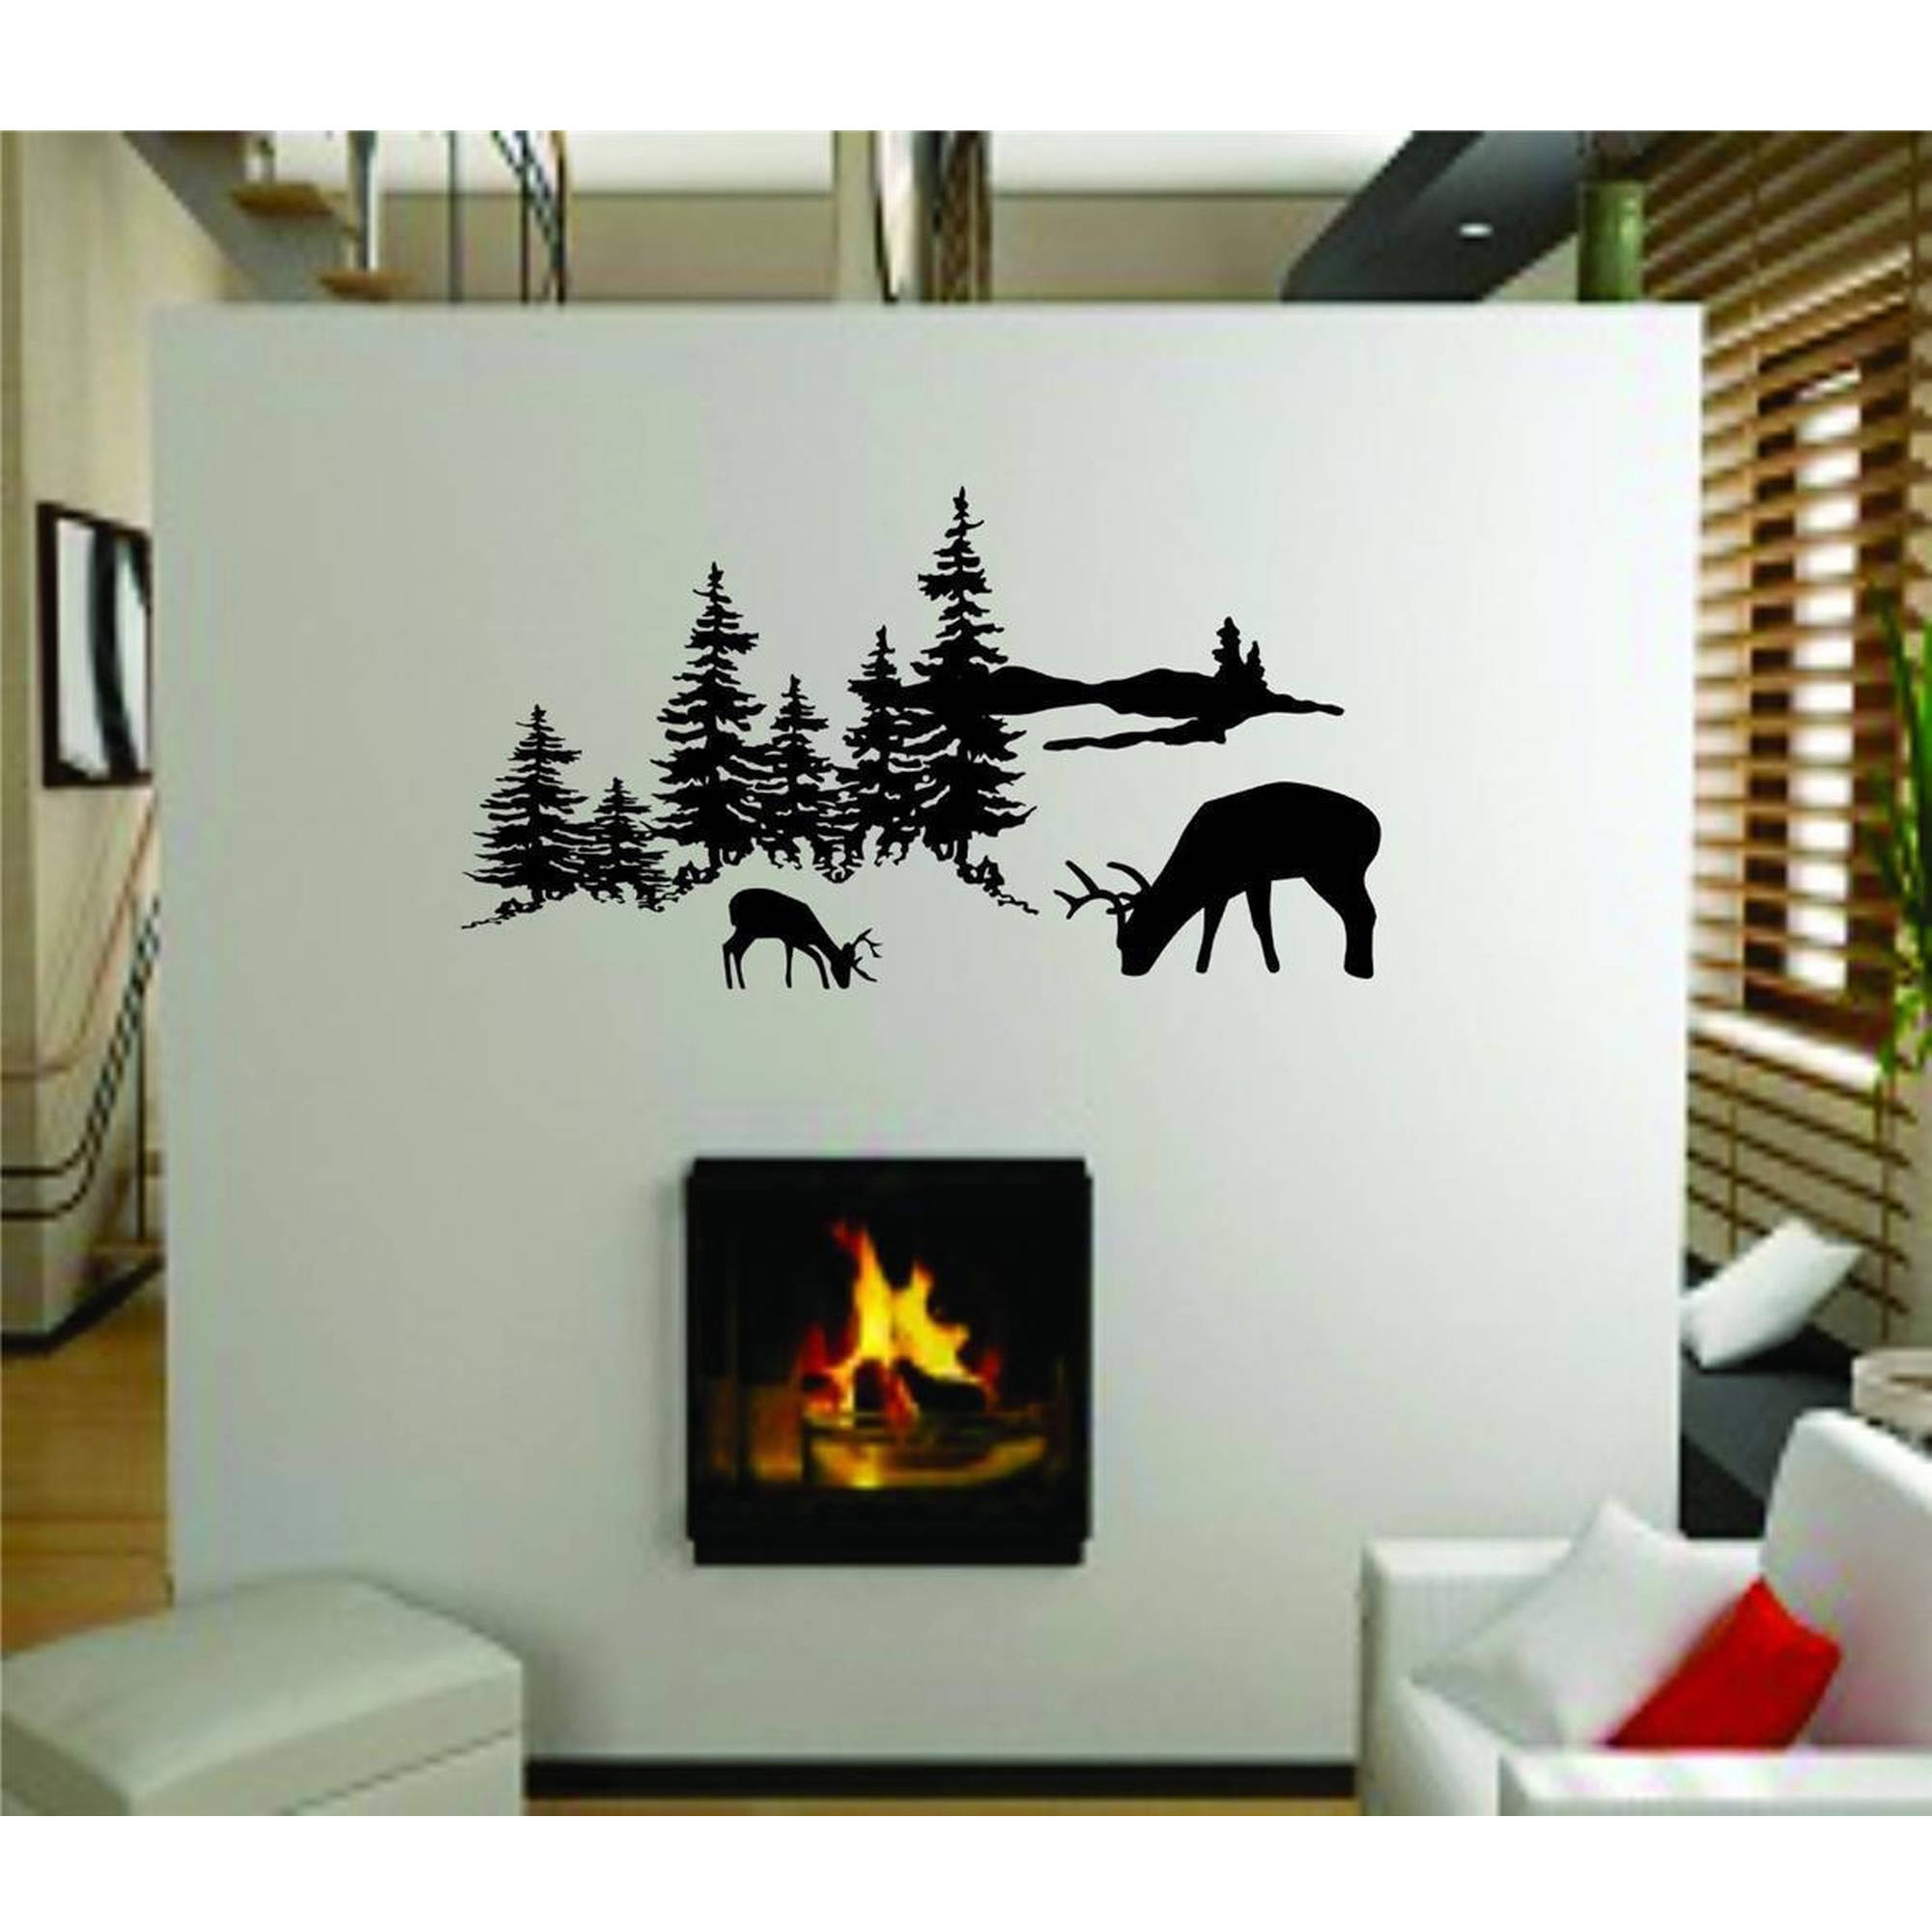 "Outdoor Hunting Scene Living Room Home Vinyl Wall Decal, 9"" x 20"", Black"